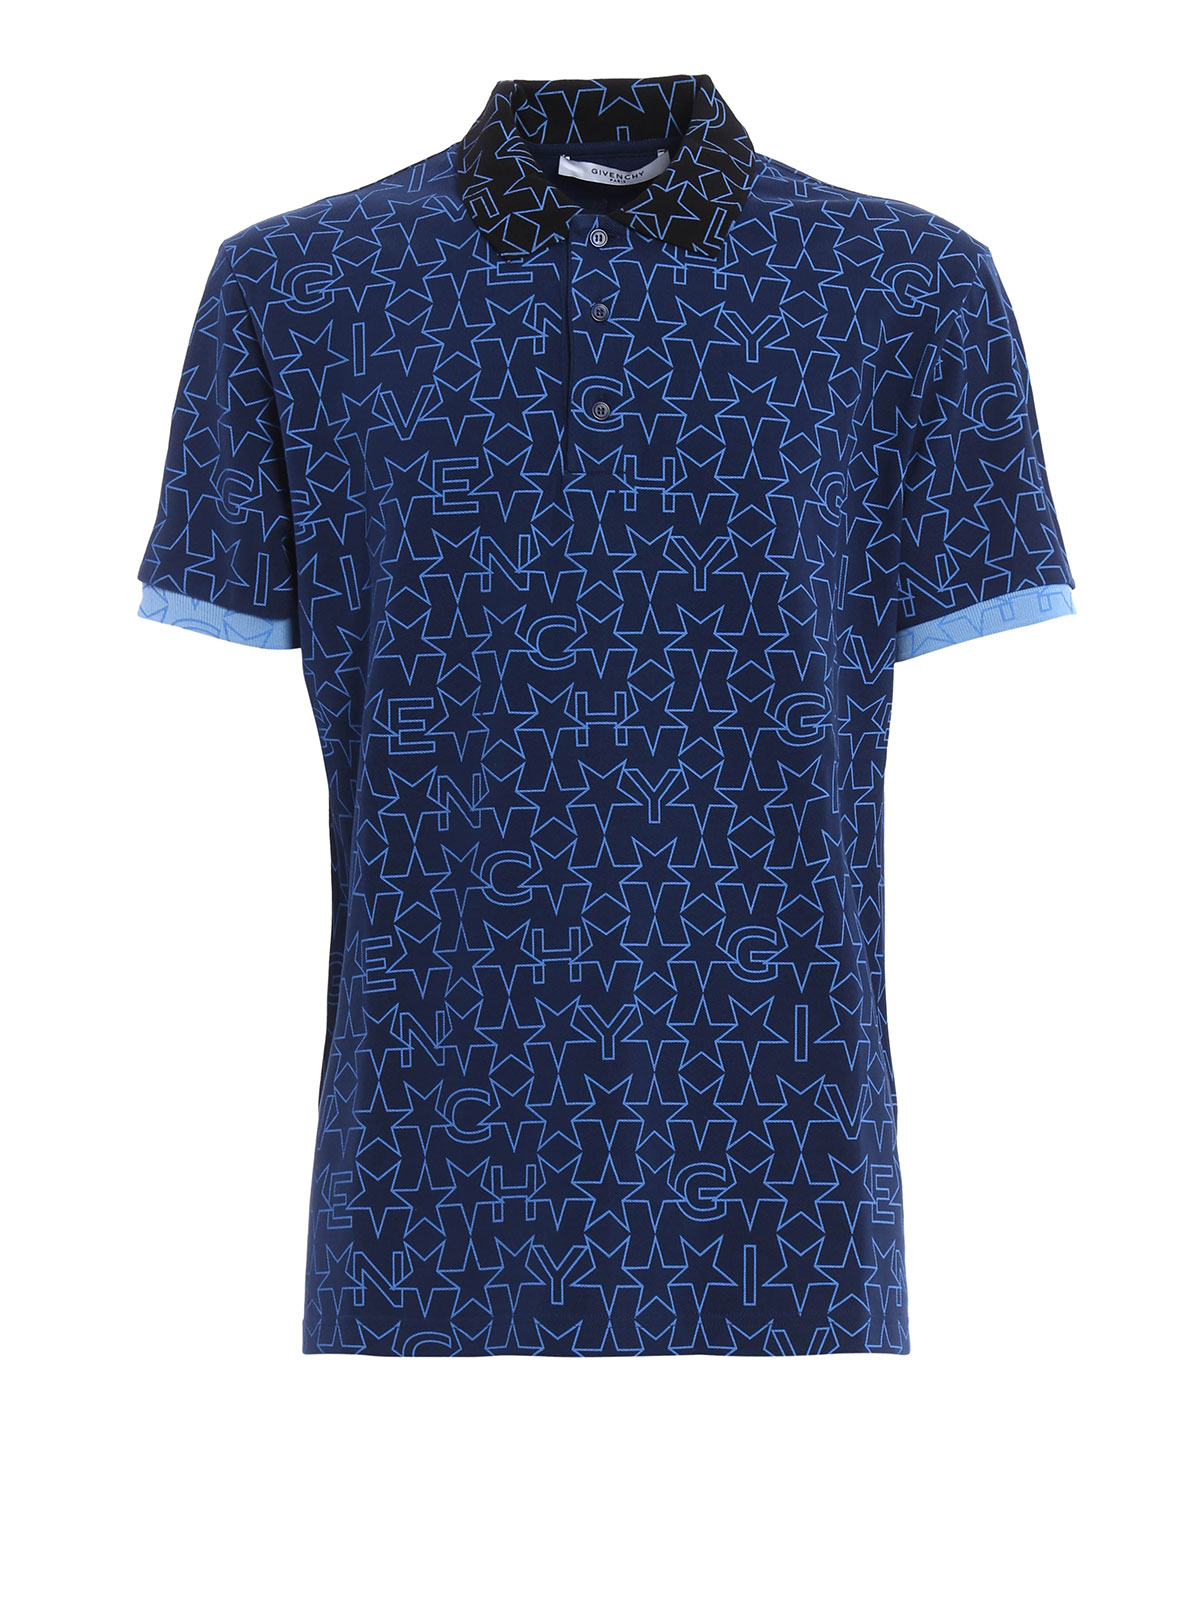 Star print polo by givenchy polo shirts ikrix for Polo shirts for printing